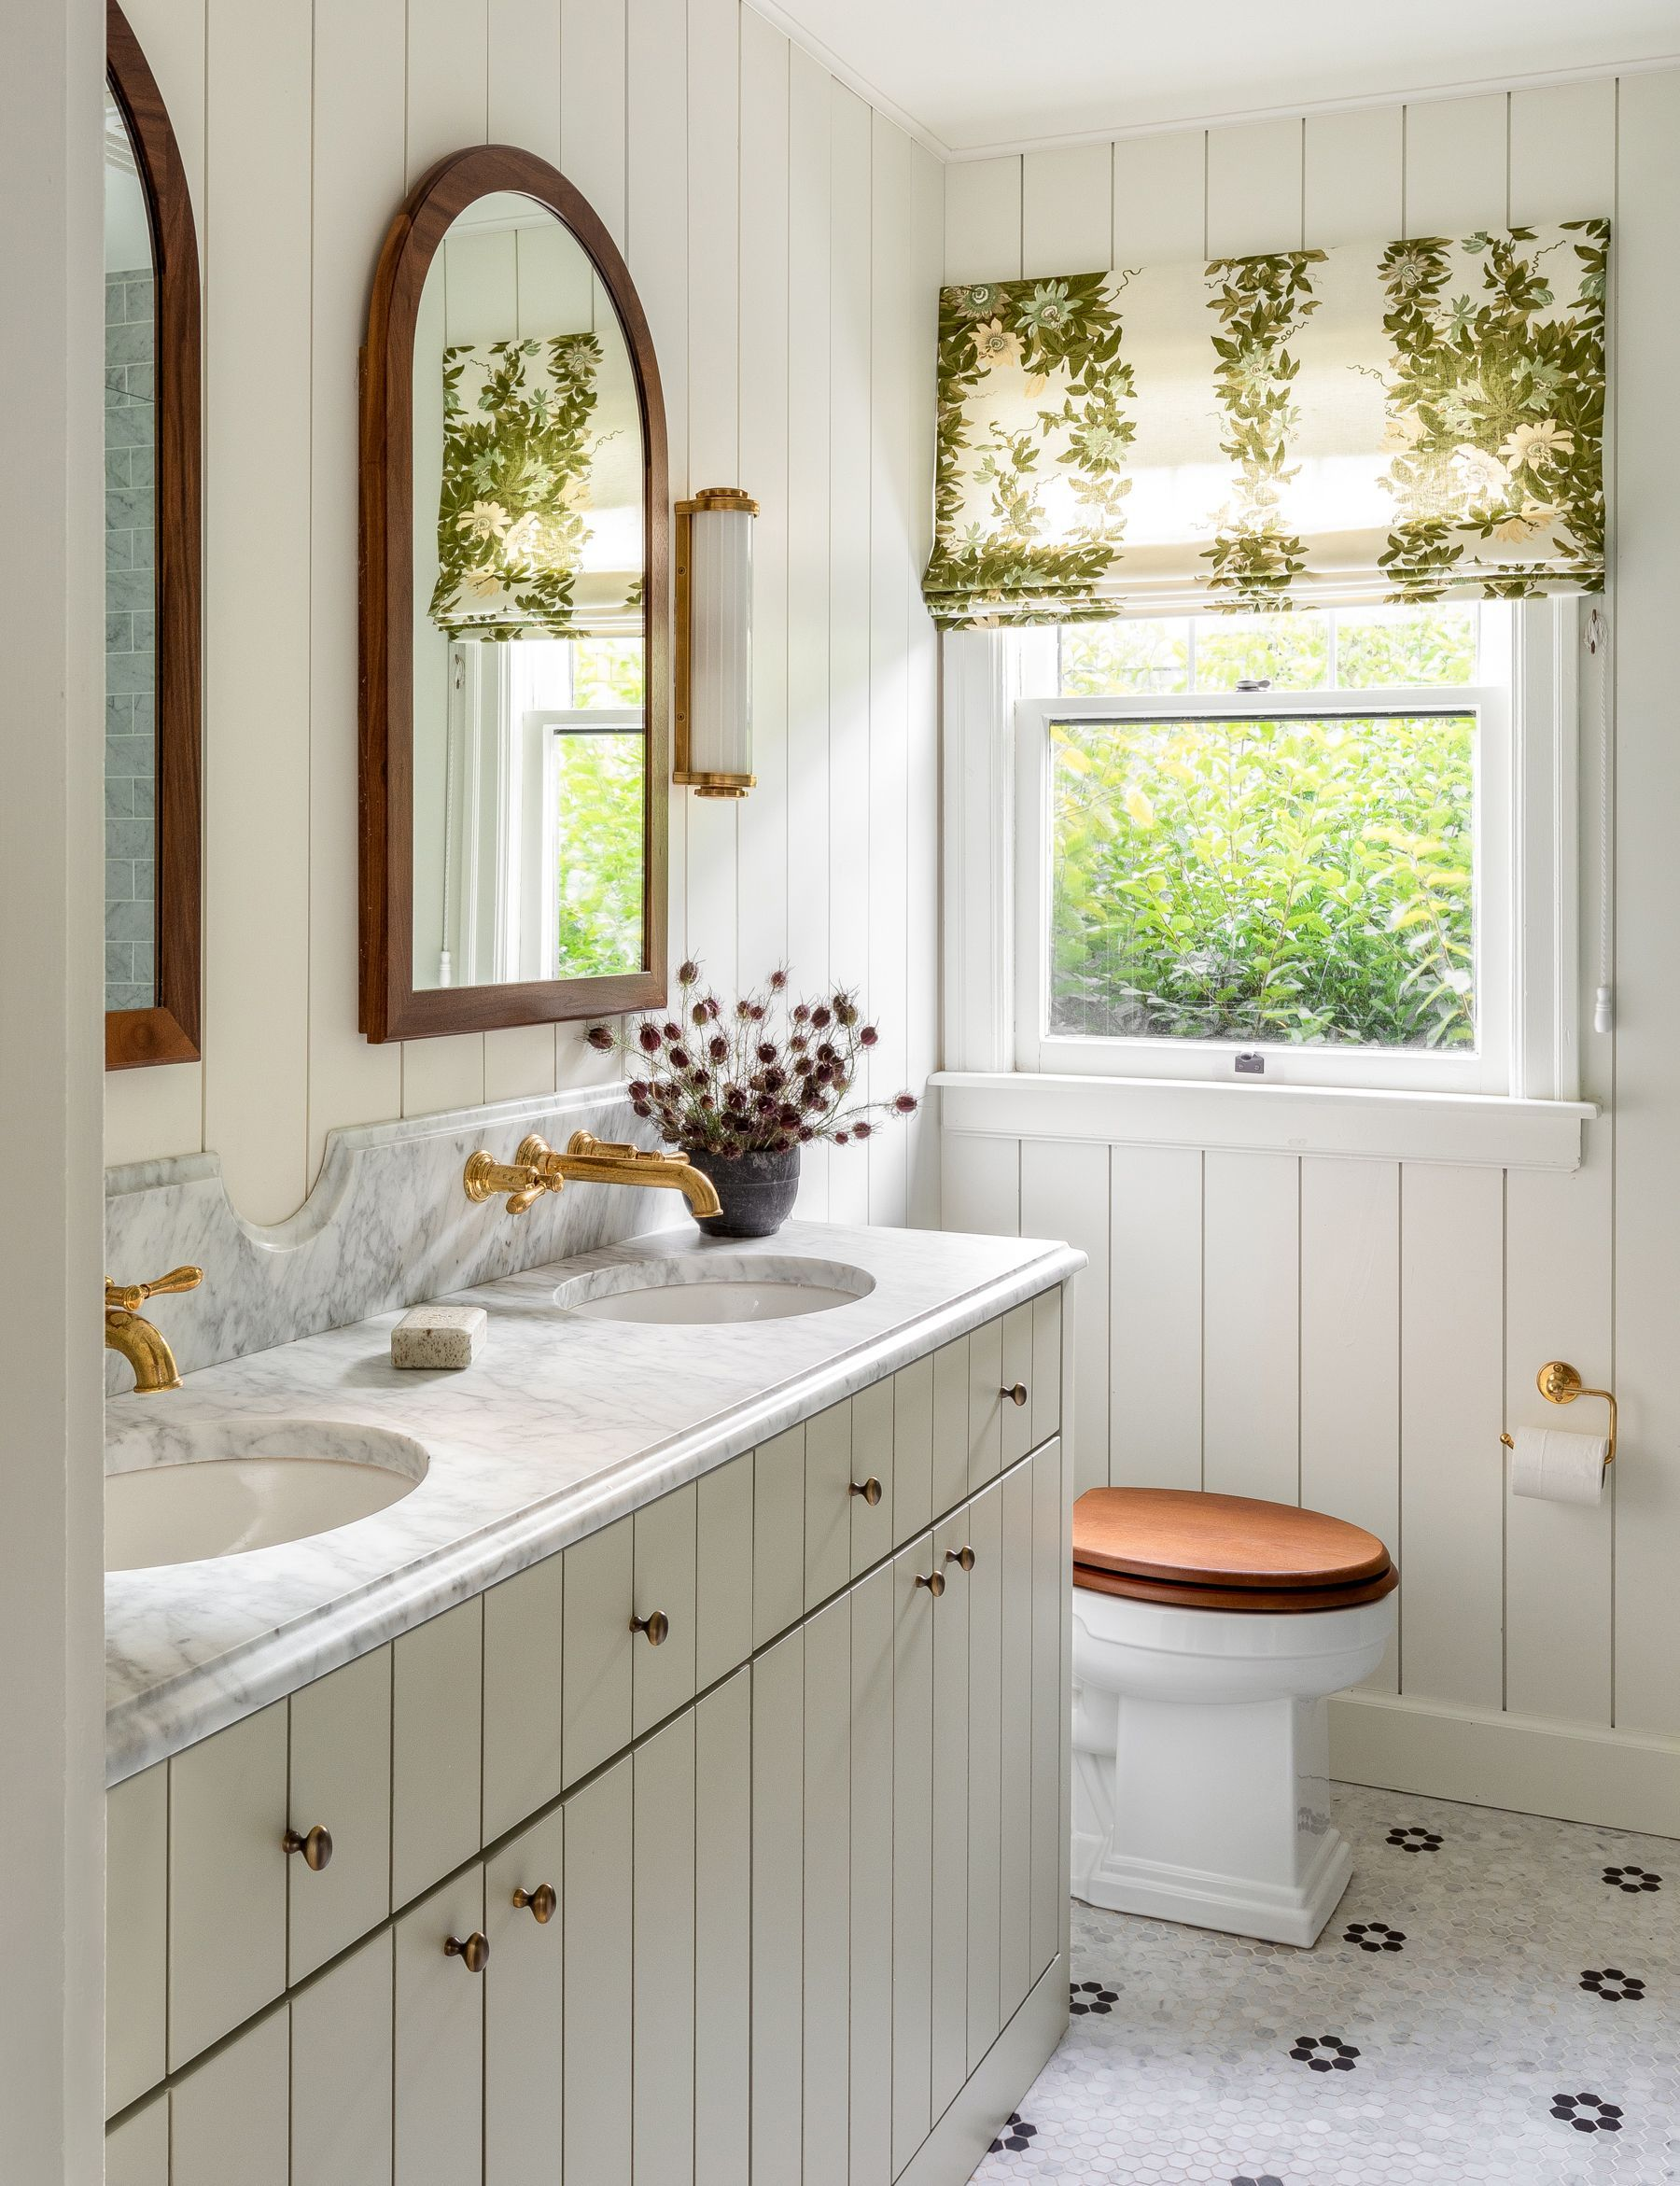 8 Magnificent Home Remodel Open Concept Stupendous Ideas In 2020 Bathroom Farmhouse Style Bathroom Trends English Cottage Style